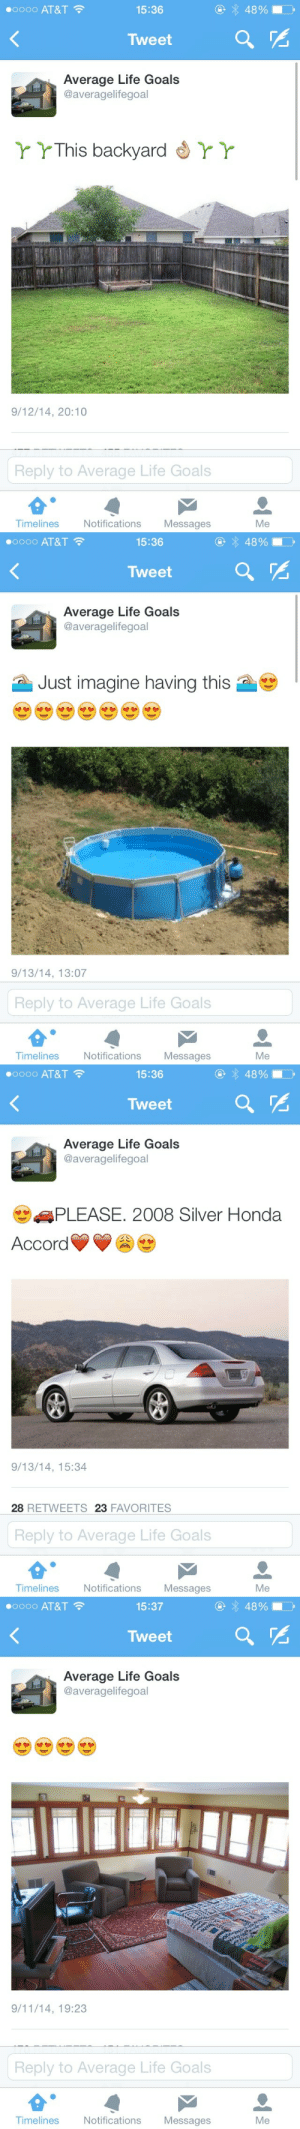 9/11, Goals, and Honda:  #0000 AT&T  15:36  Tweet  Average Life Goals  @averagelifegoal  r YThis backyard  YY  9/12/14, 20:10  Reply to Average Life Goals  Timelines  Notifications Messages  Me   00000 AT&T  15:36  OOoO  Tweet  Average Life Goals  @averagelifegoal  Just imagine having this  9/13/14, 13:07  Reply to Average Life Goals  Timelines  Notifications Messages  Me   0000 AT&T  15:36  Tweet  Average Life Goals  @averagelifegoal  PLEASE. 2008 Silver Honda  Accord  9/13/14, 15:34  28 RETWEETS 23 FAVORITES  Reply to Average Life Goals  Timelines  Notifications Messages  Me   #0000 AT&T  15:37  Tweet  Average Life Goals  @averagelifegoal  9/11/14, 19:23  Reply to Average Life Goals  Timelines  Notifications Messages  Me necrophilofthefuture:  why dream big and get let down when u can aim for mediocrity and achieve it 333